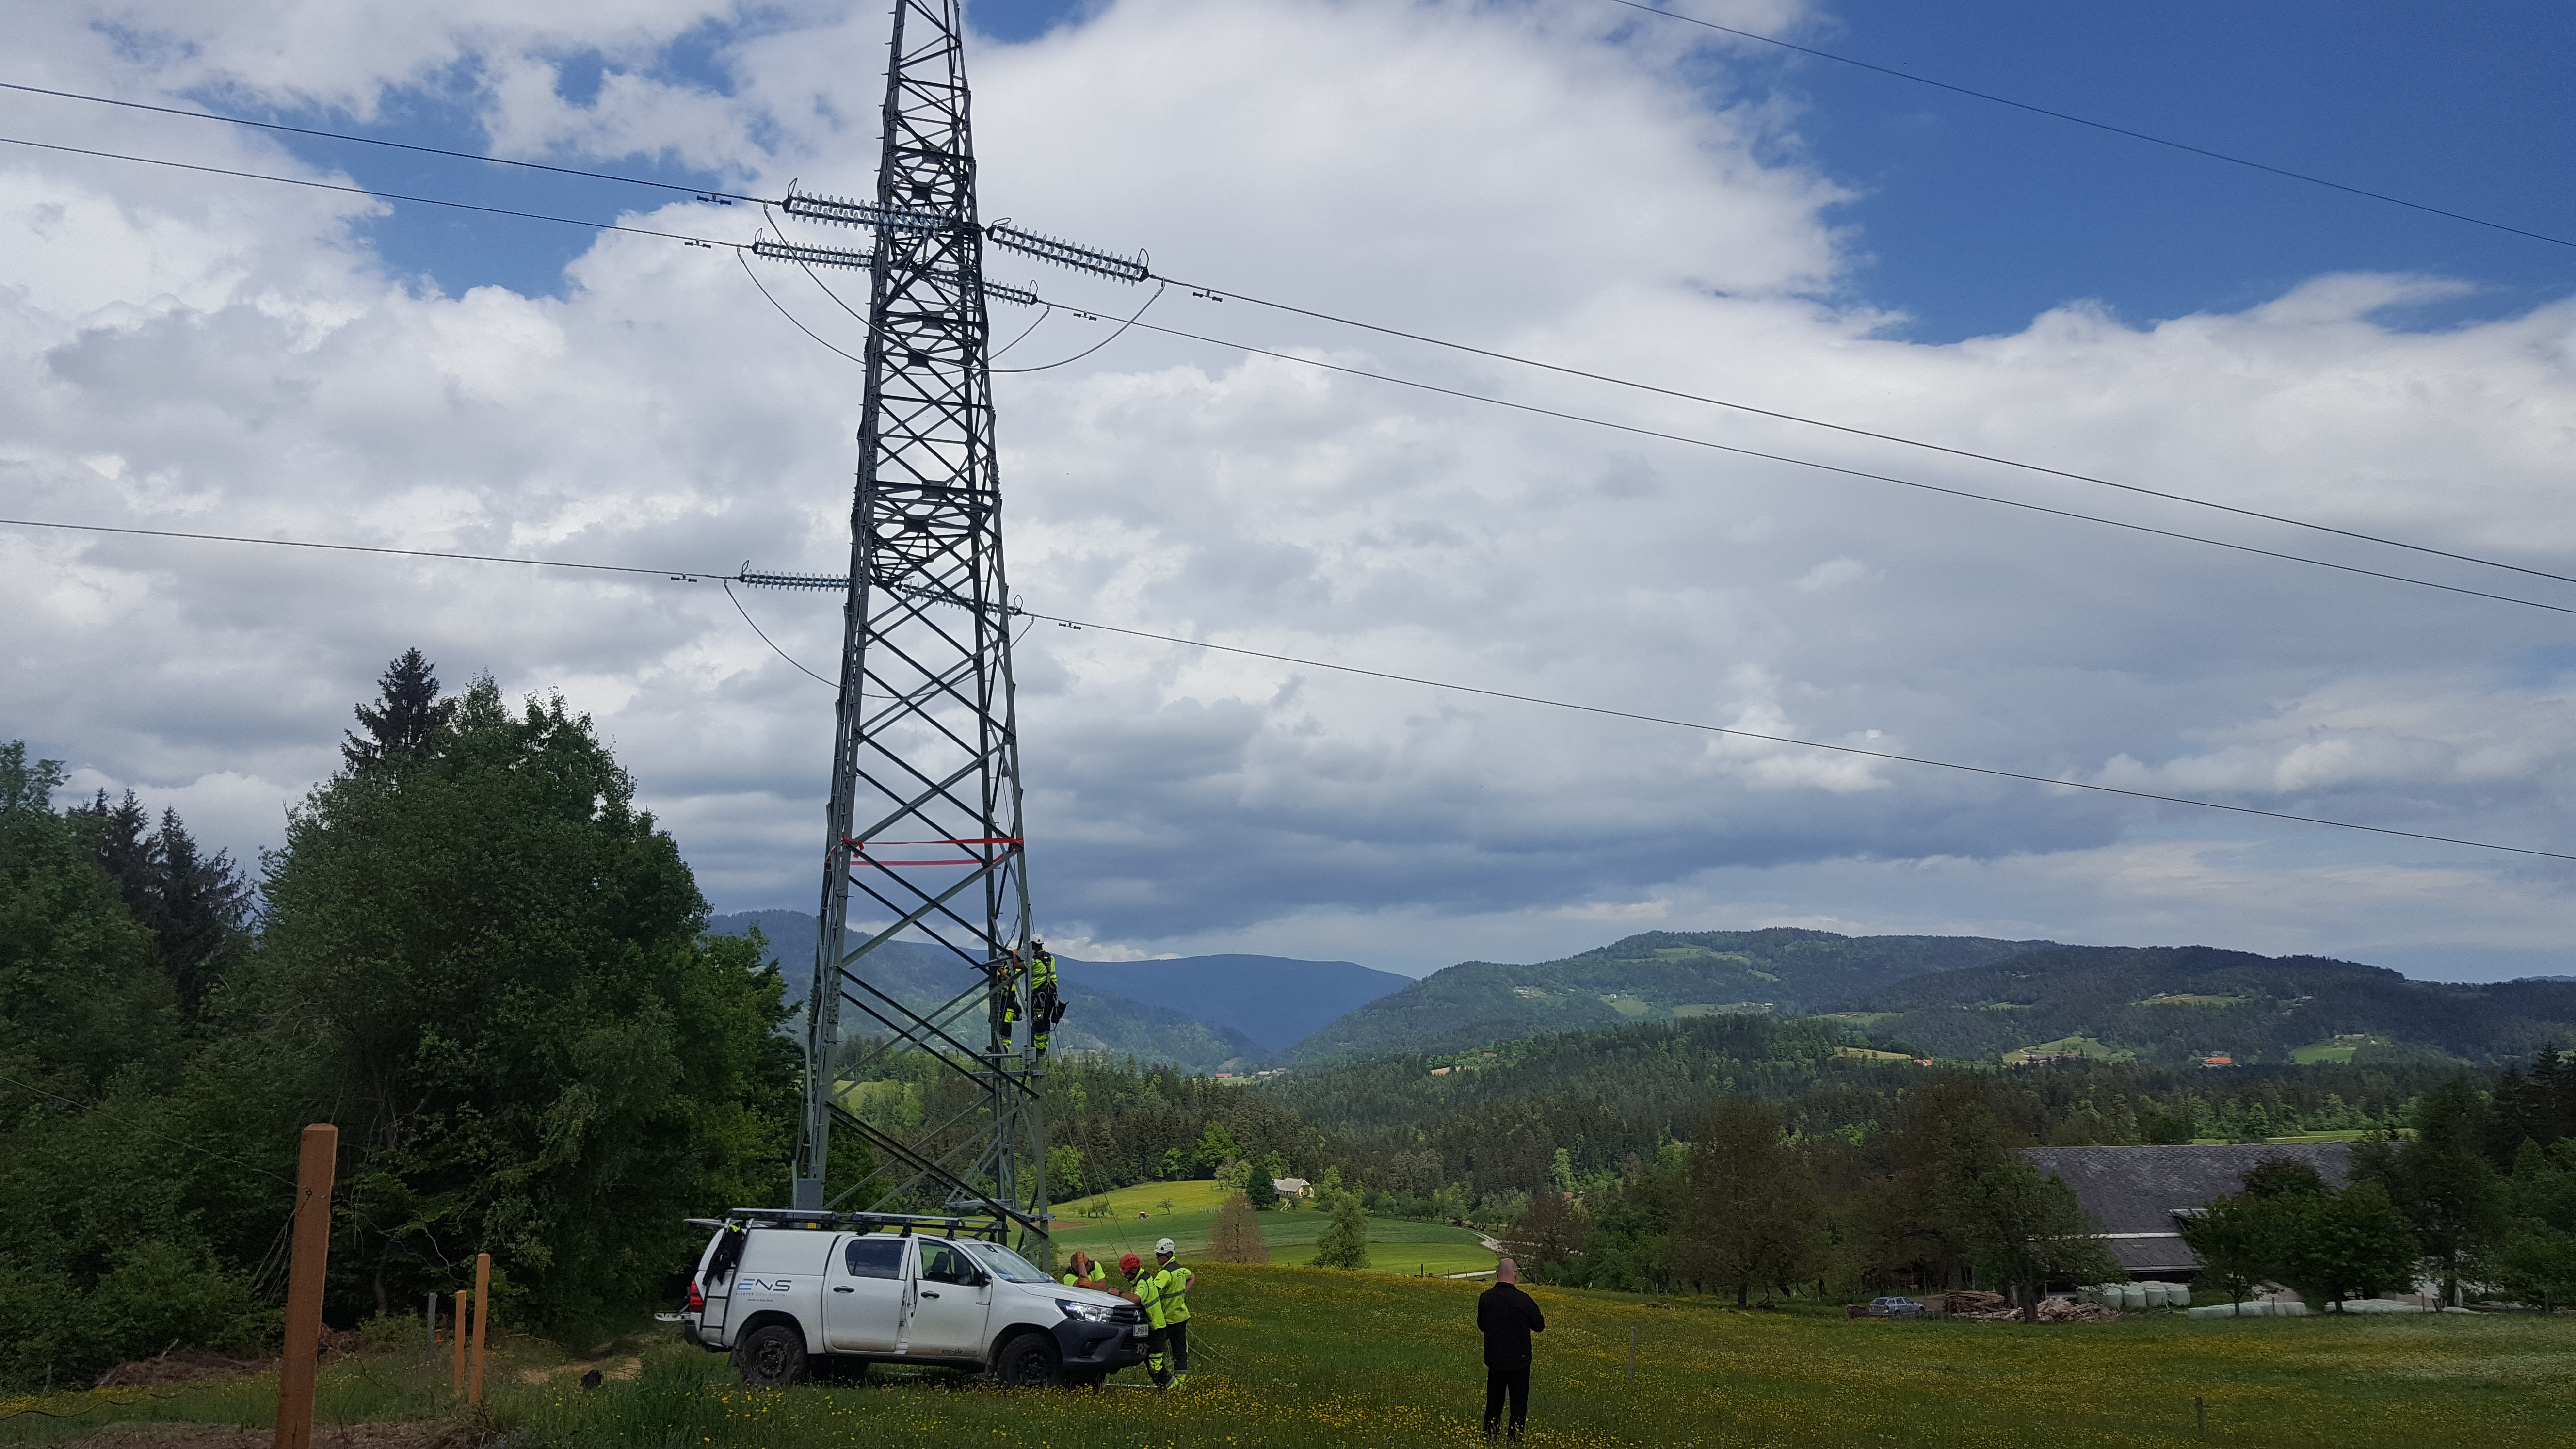 18 transmission towers equipped with the steel structures for innovative weather stations